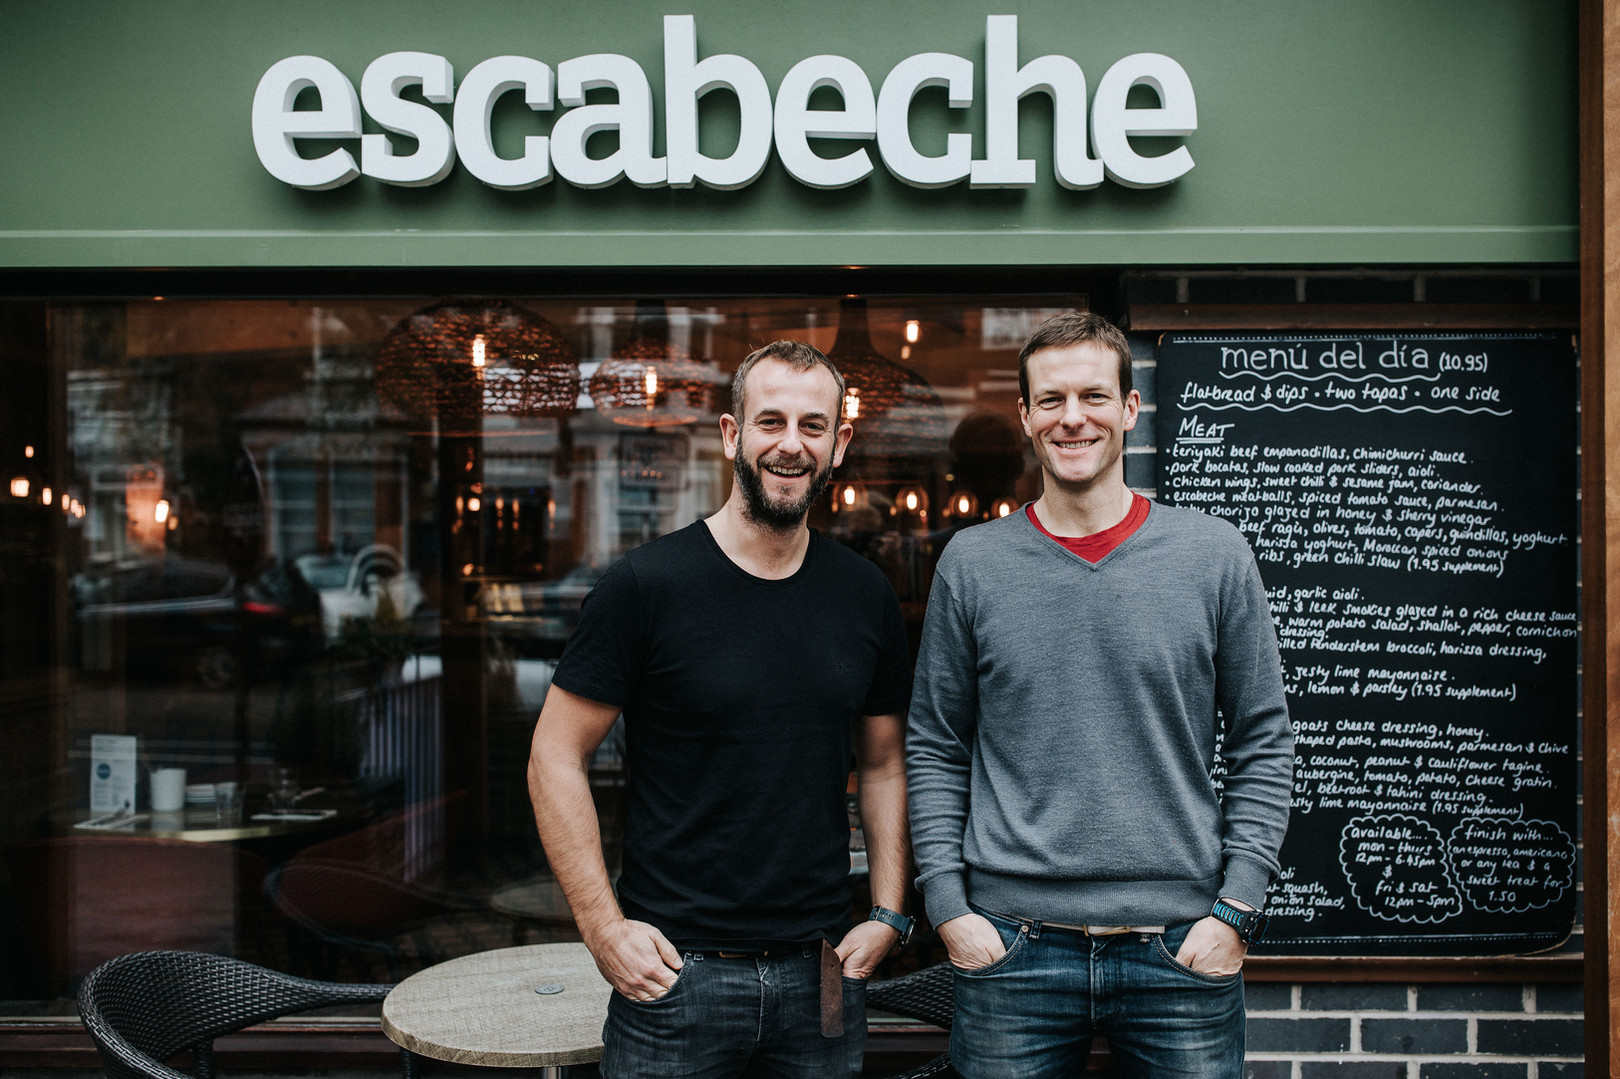 escabeche re-opening - 2018